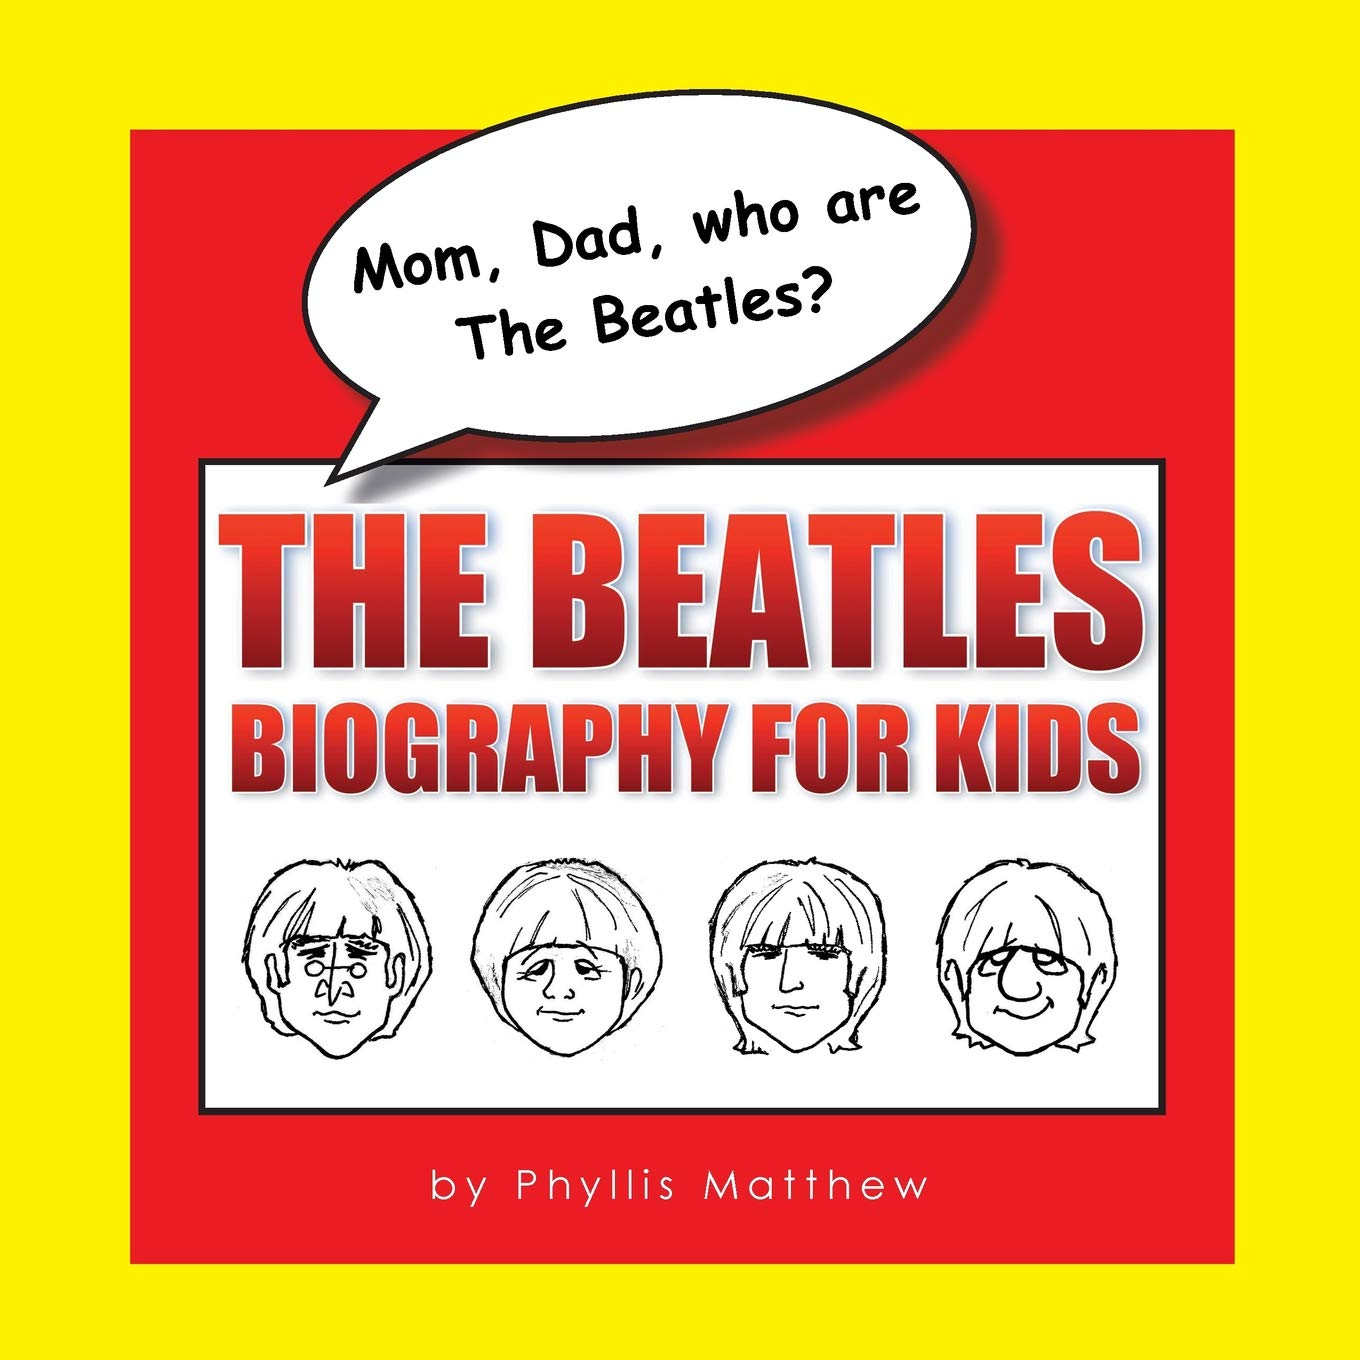 Mom Dad who are The Beatles?: The Beatles Biography for Kids